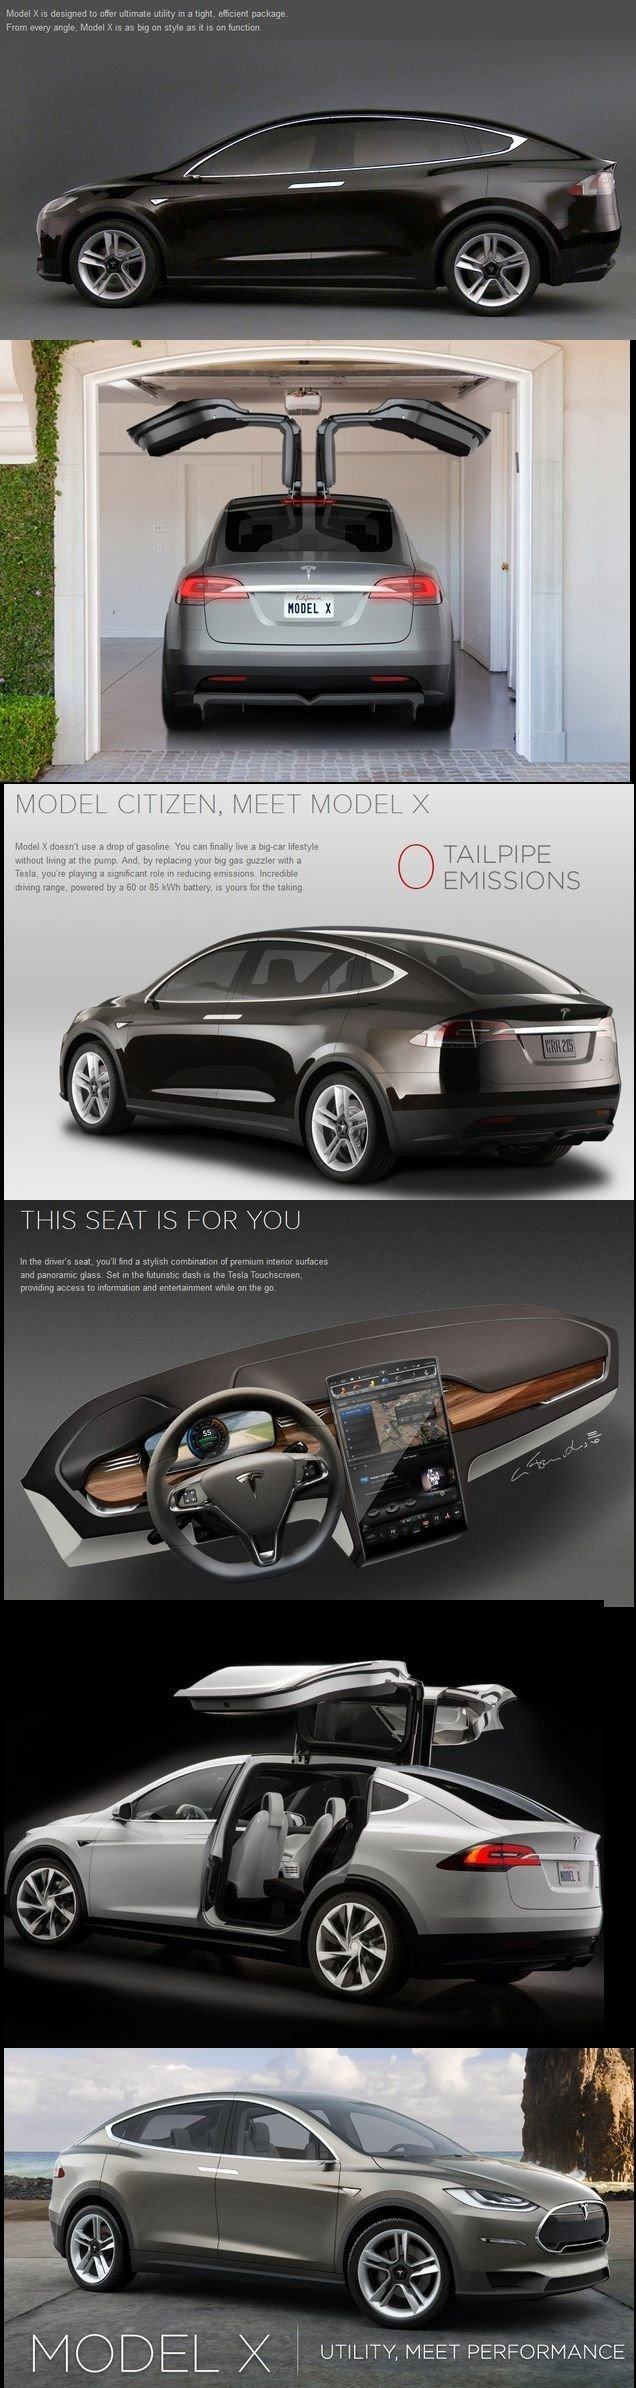 Latest Best 25 Electric Cars Ideas On Pinterest Bmw Cars Hot Free Download